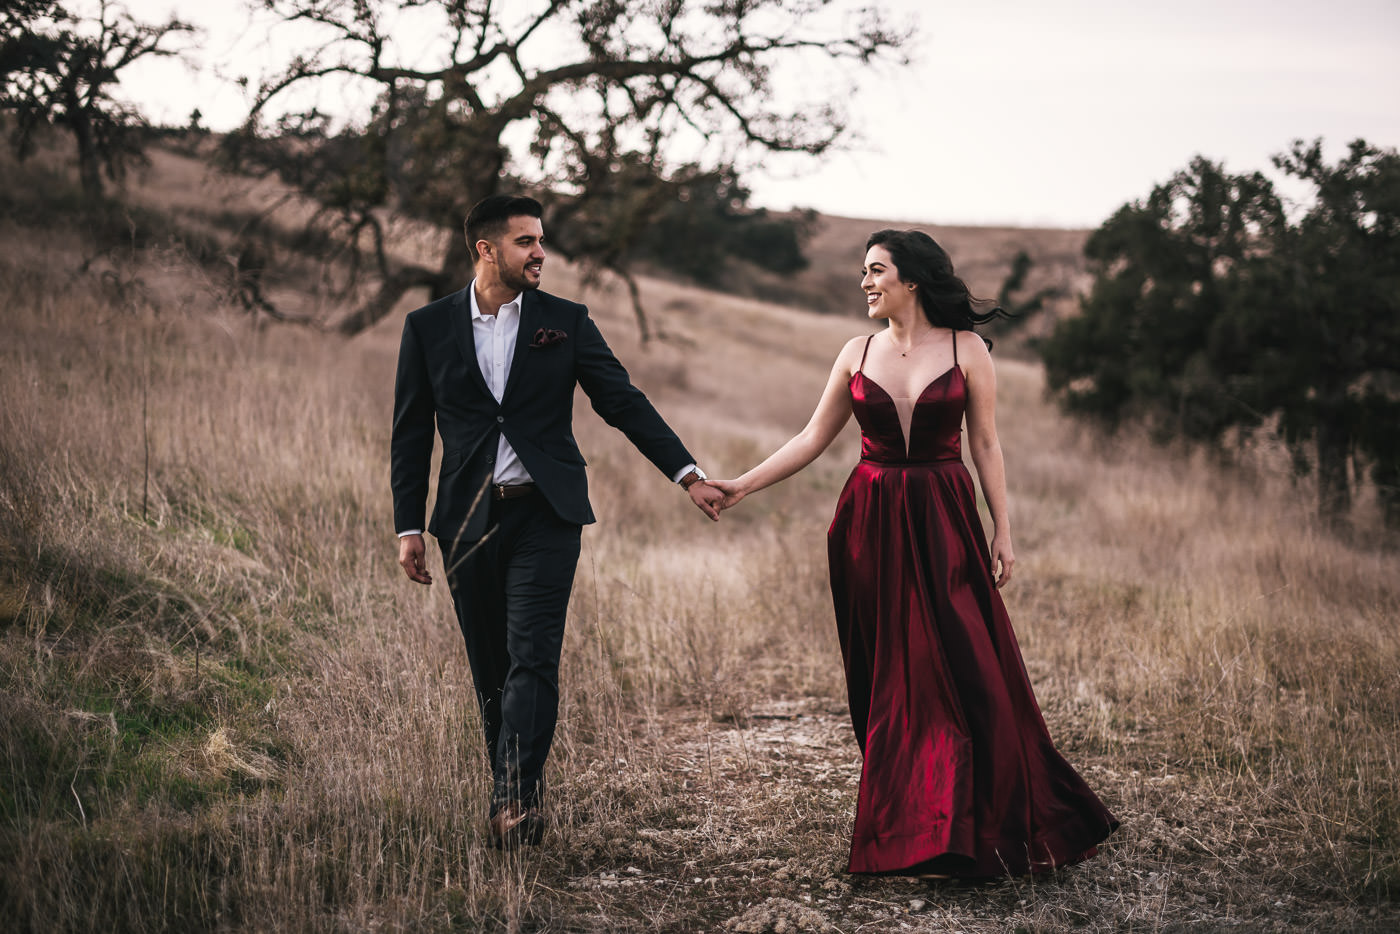 Best southern California wedding photographer shoots a stunning engagement session.